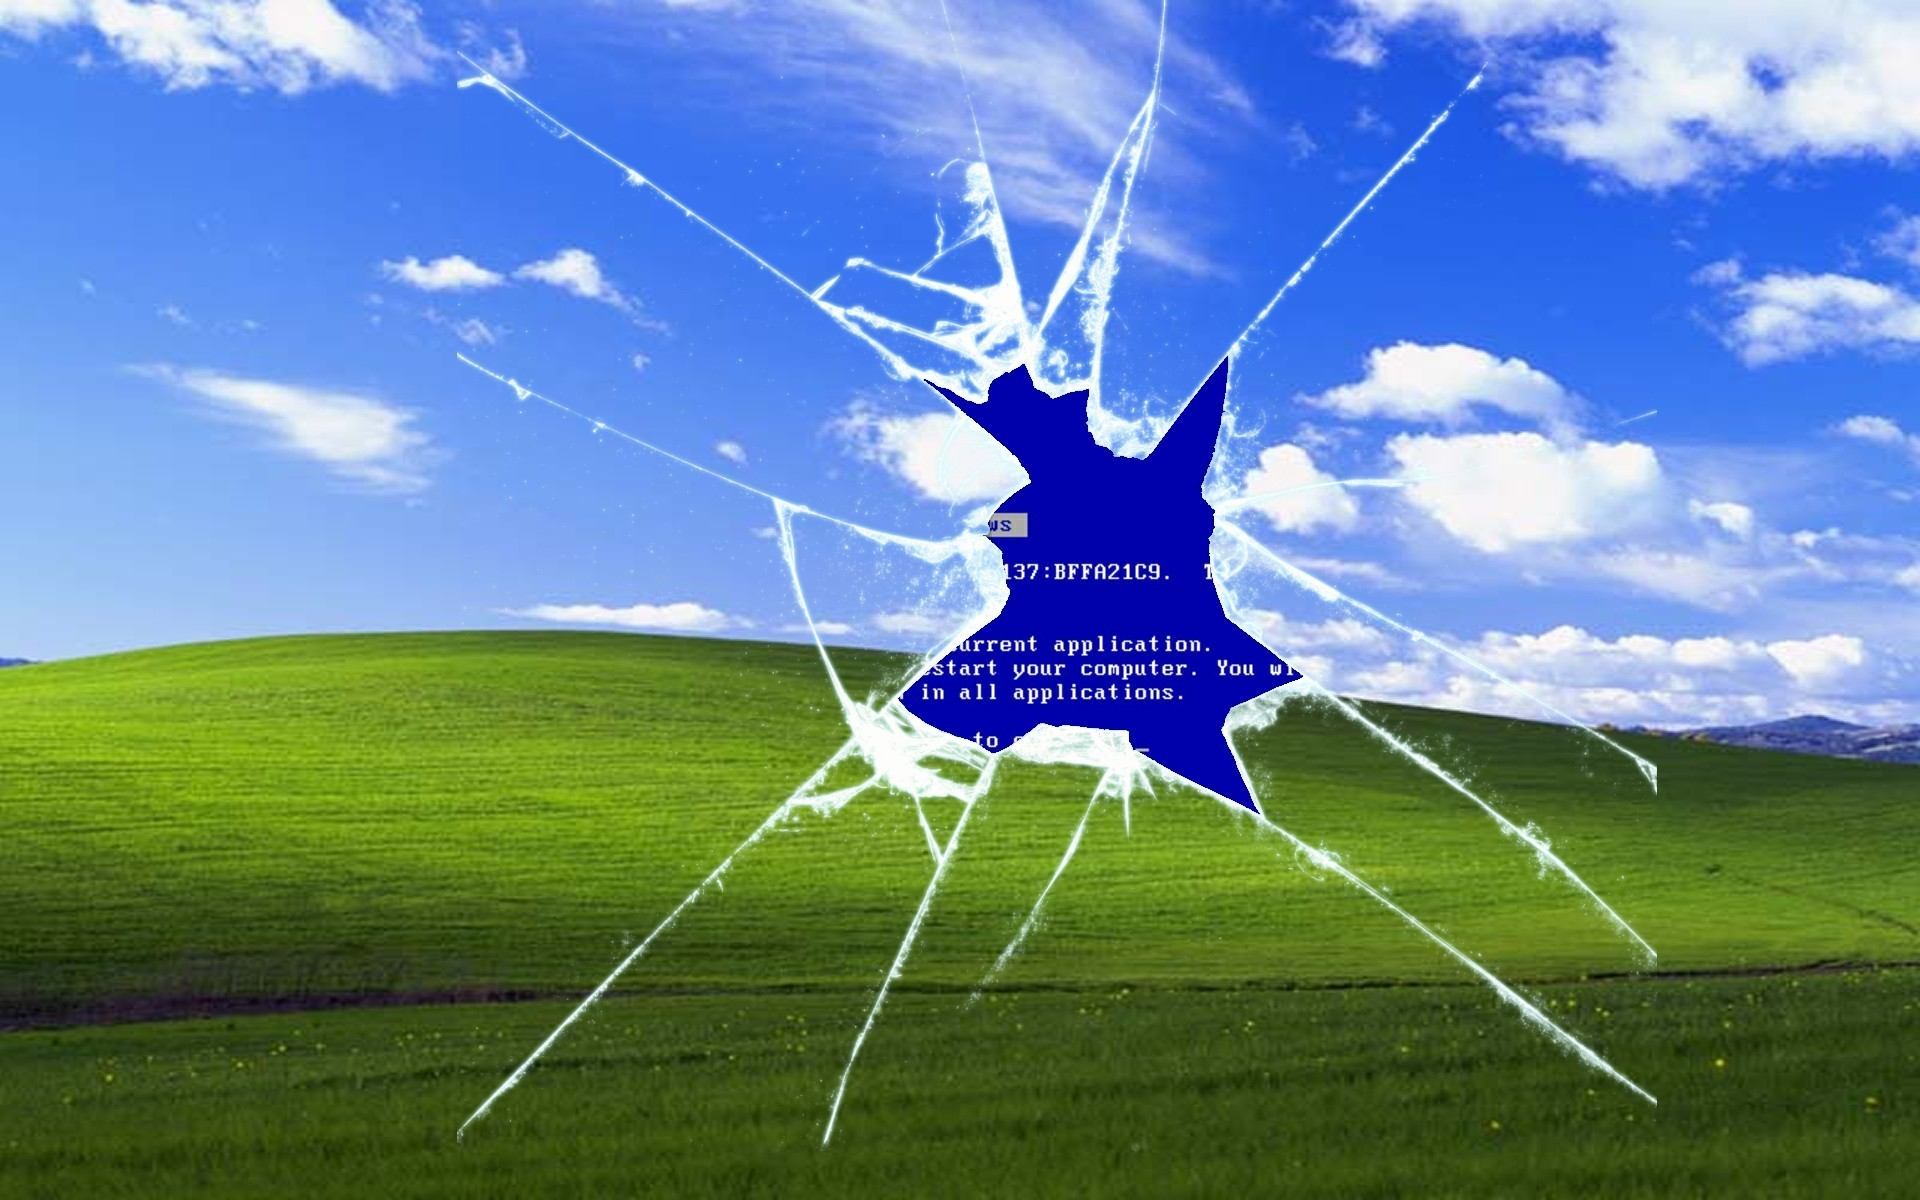 1920x1200 a'atwistedsifter windows xp wallpaper location free wallpaper download